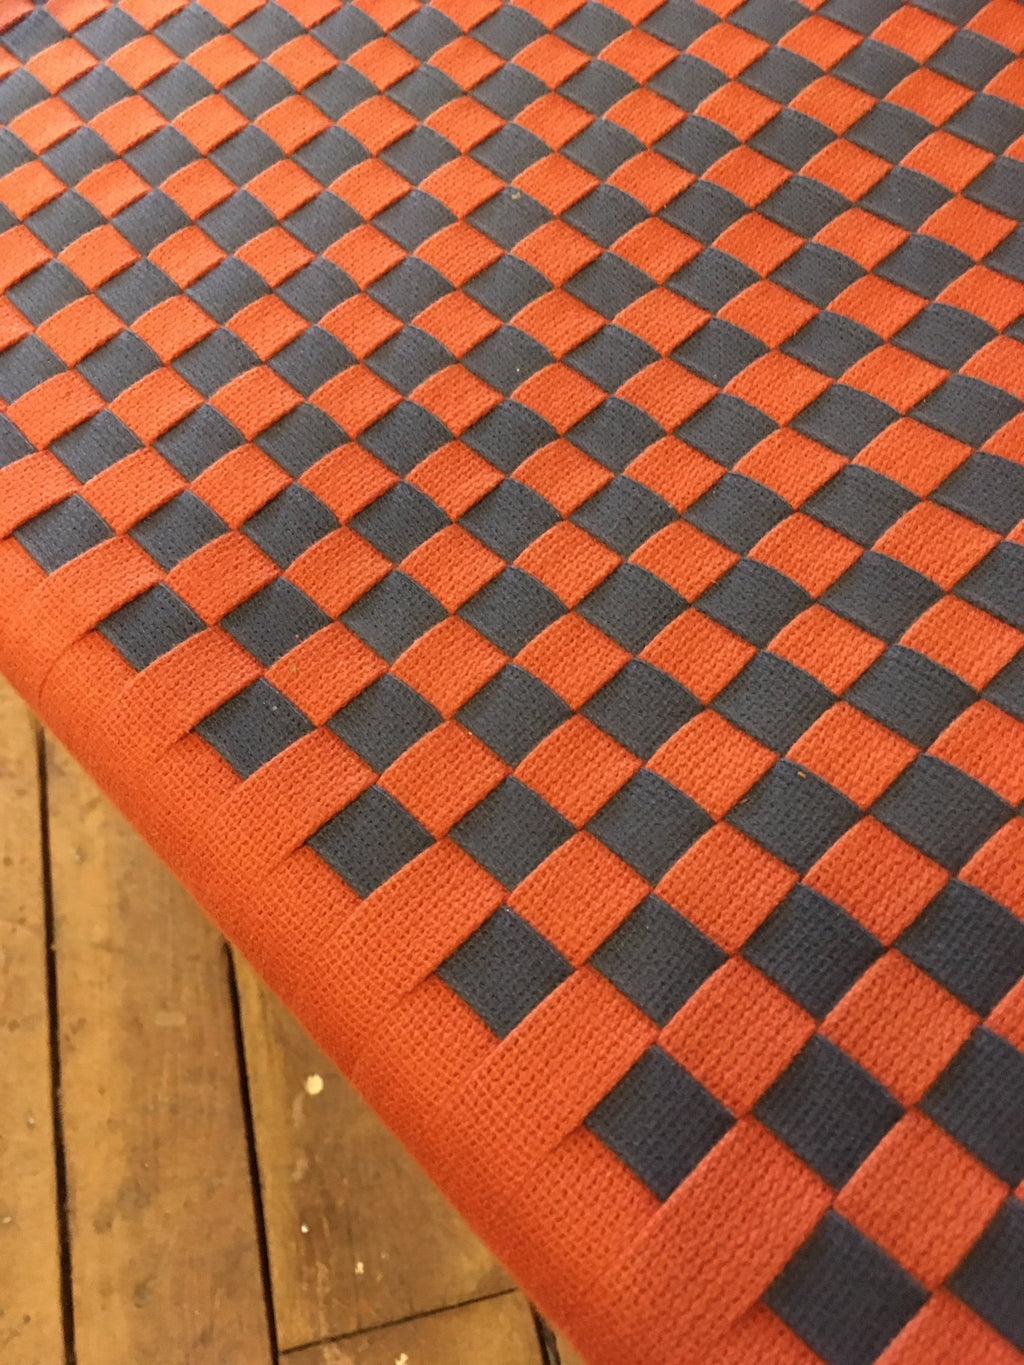 COTTAGE ARM CHAIR WITH CHECKERBOARD SEAT - ShackletonThomas